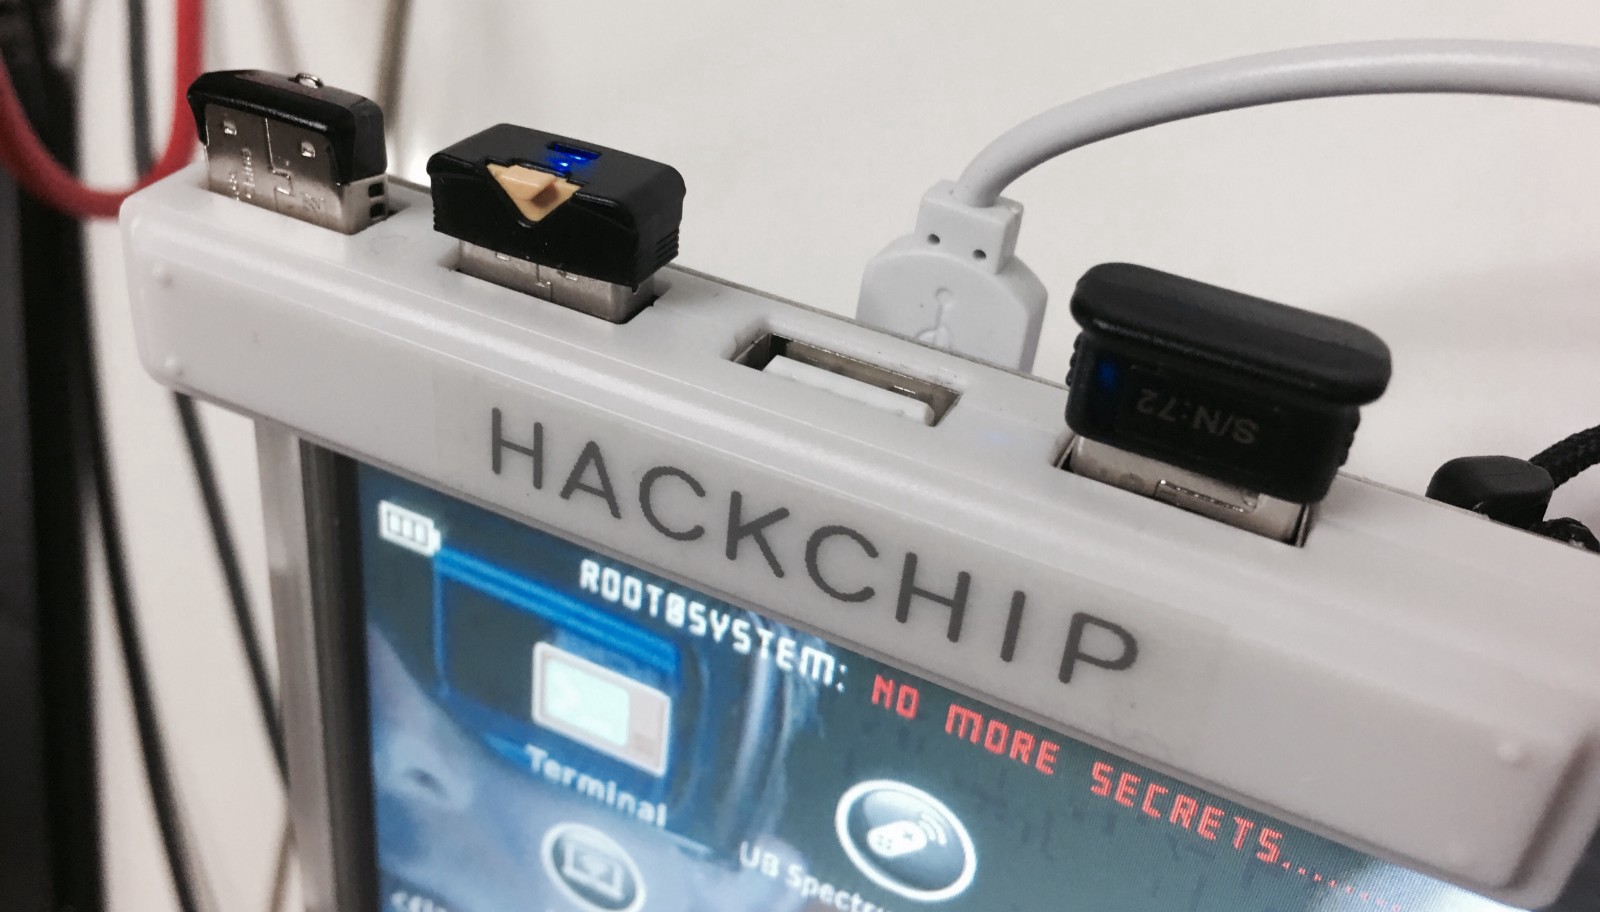 Hack Chip An Uber Portable Hacking Powerhouse Hackster Blog